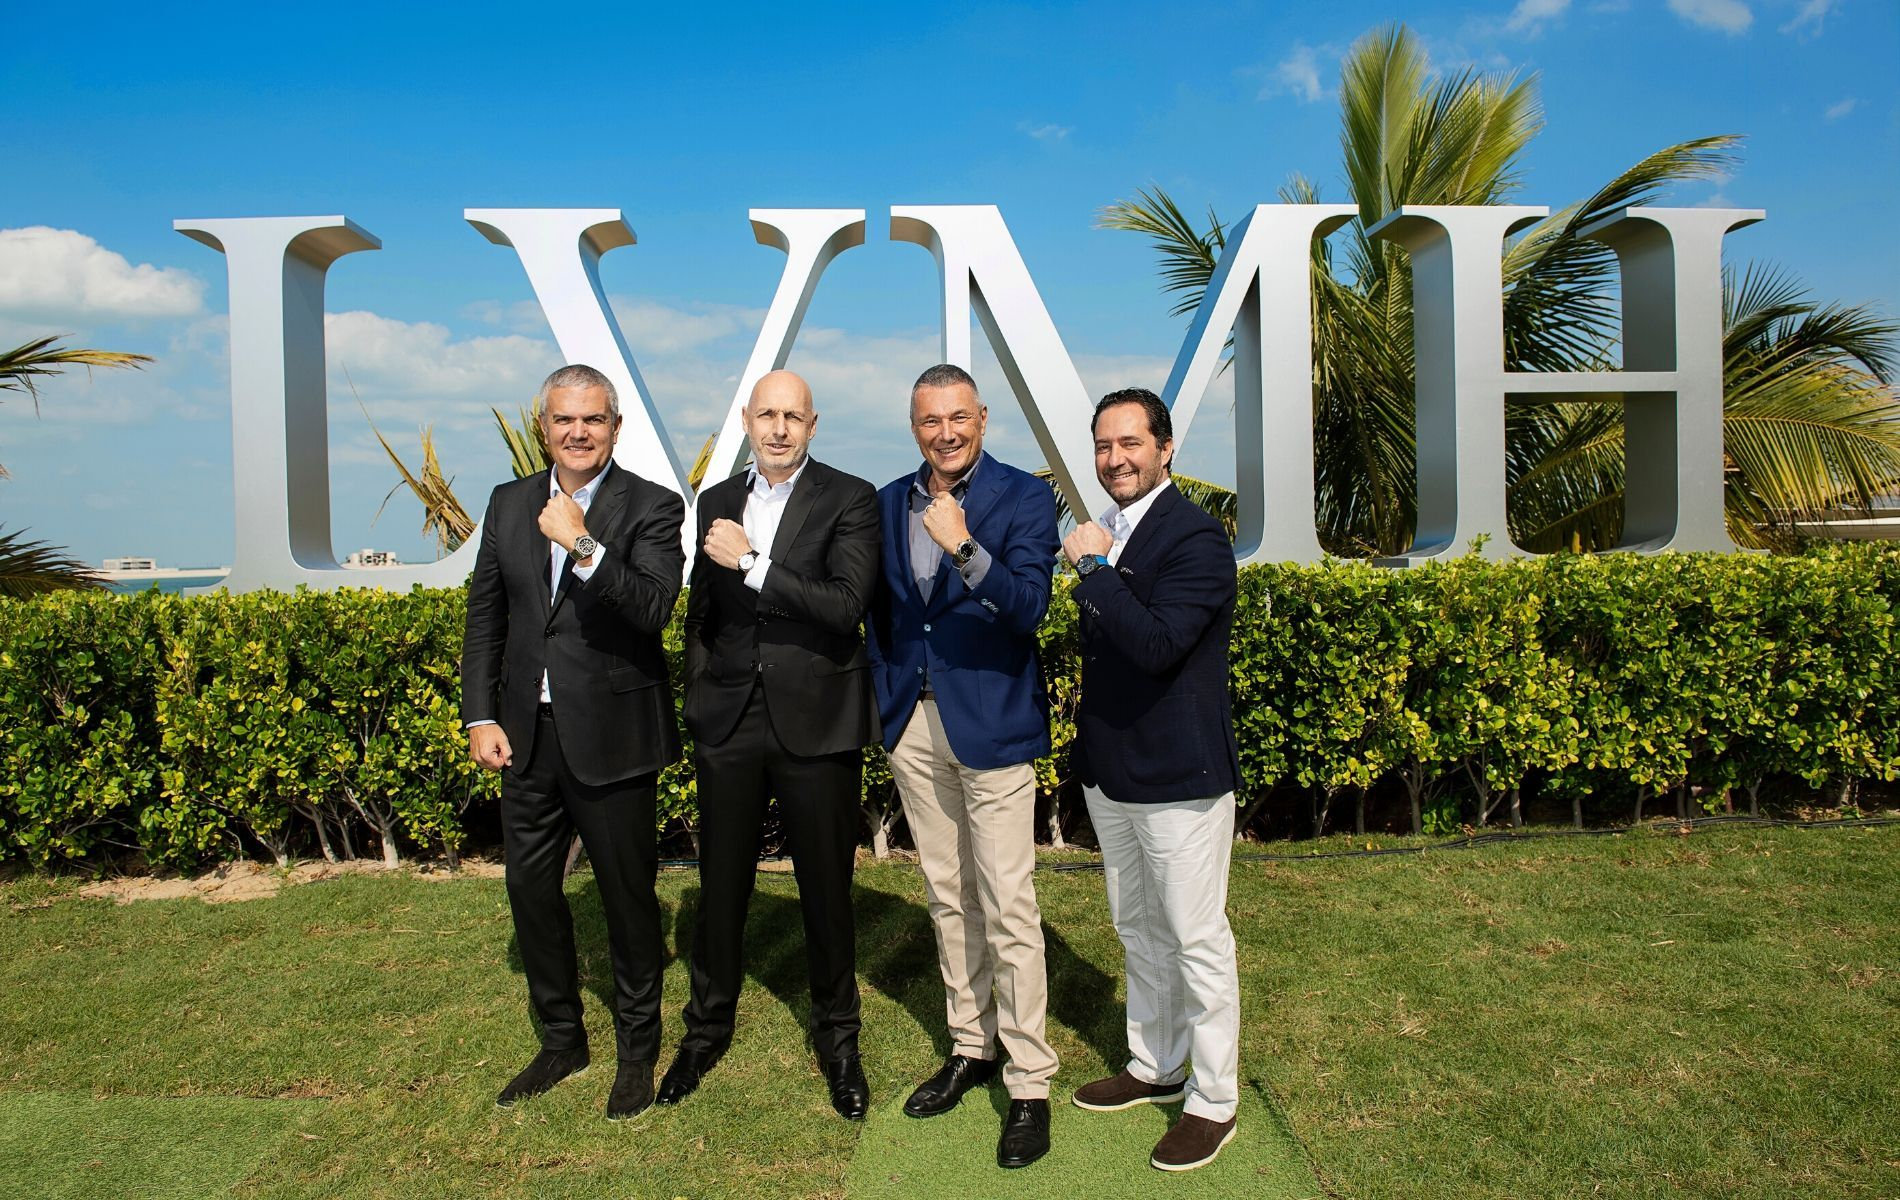 Ricardo Guadalupe, Stephane Bianchi, Jean-Christophe Babin and Julien Tornare representing Hublot, TAG Heuer, Bvlgari and Zenith respectively at LVMH Watch Week in Dubai earlier this year